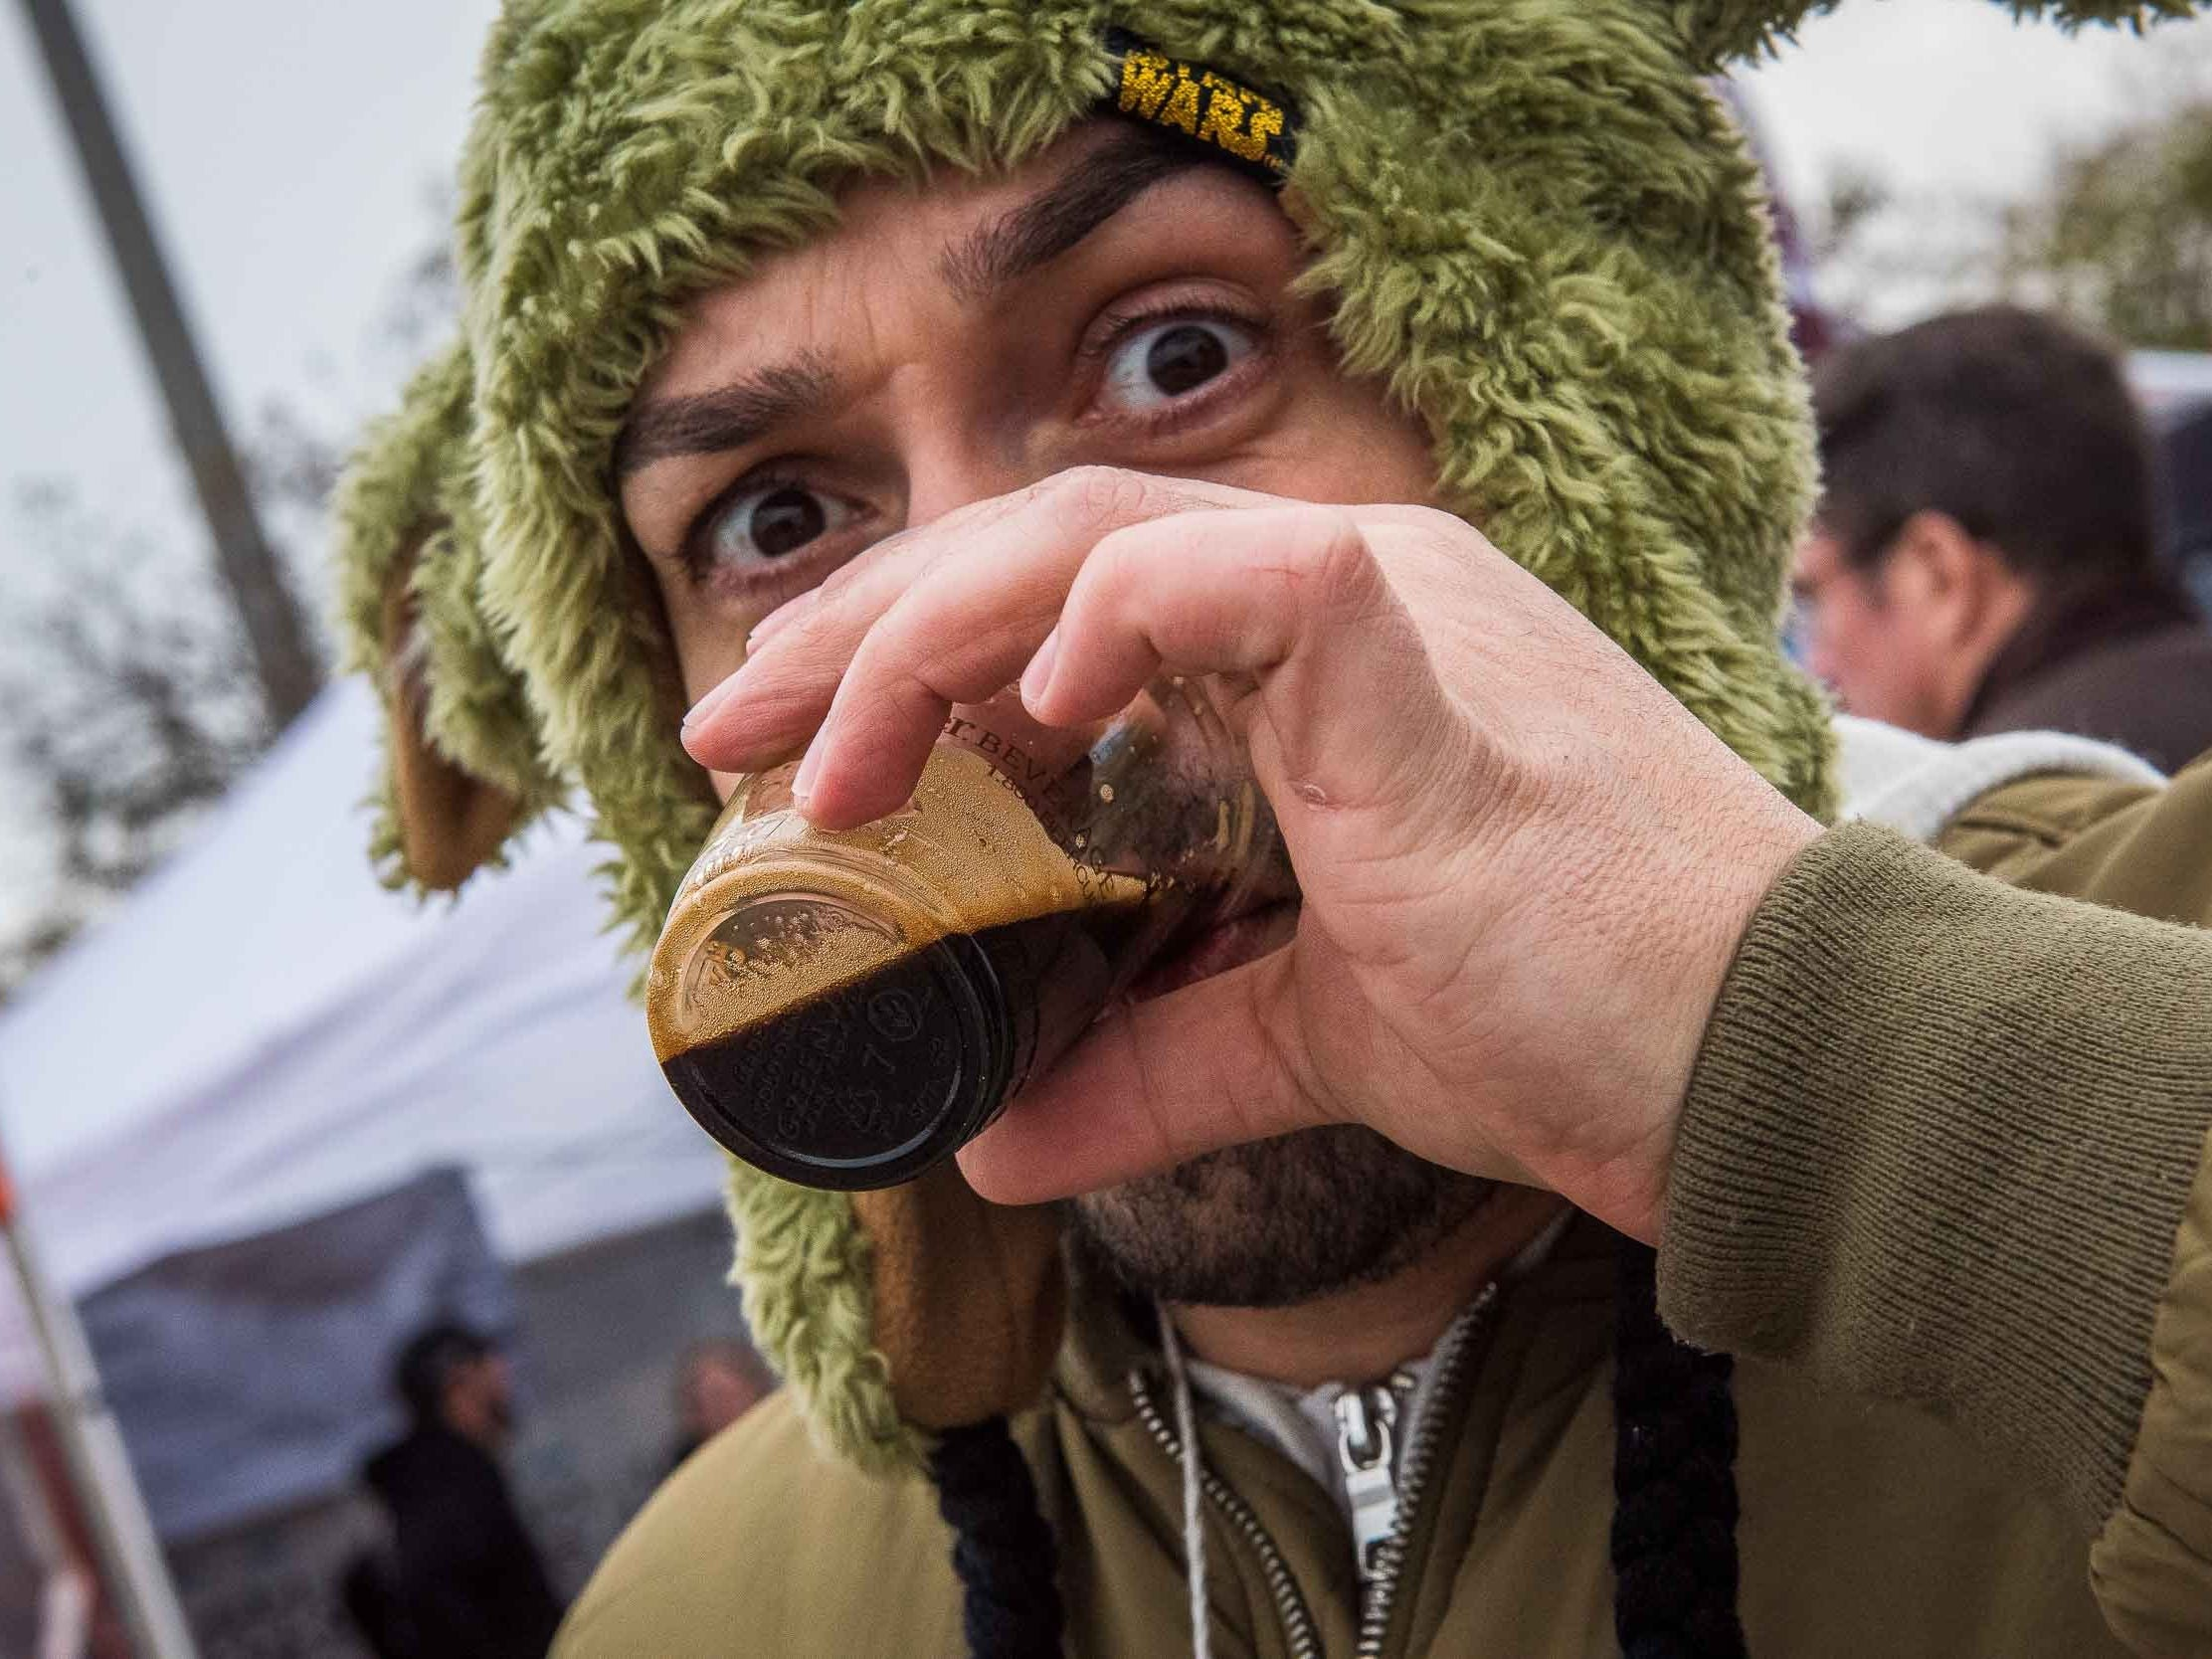 The Michigan Brewers guild annual Detroit fall beer festival returmed to Eastern Market Oct. 26, 2018. More than 110 Michigan based breweries present over 800 different craft beers for guests to sample.